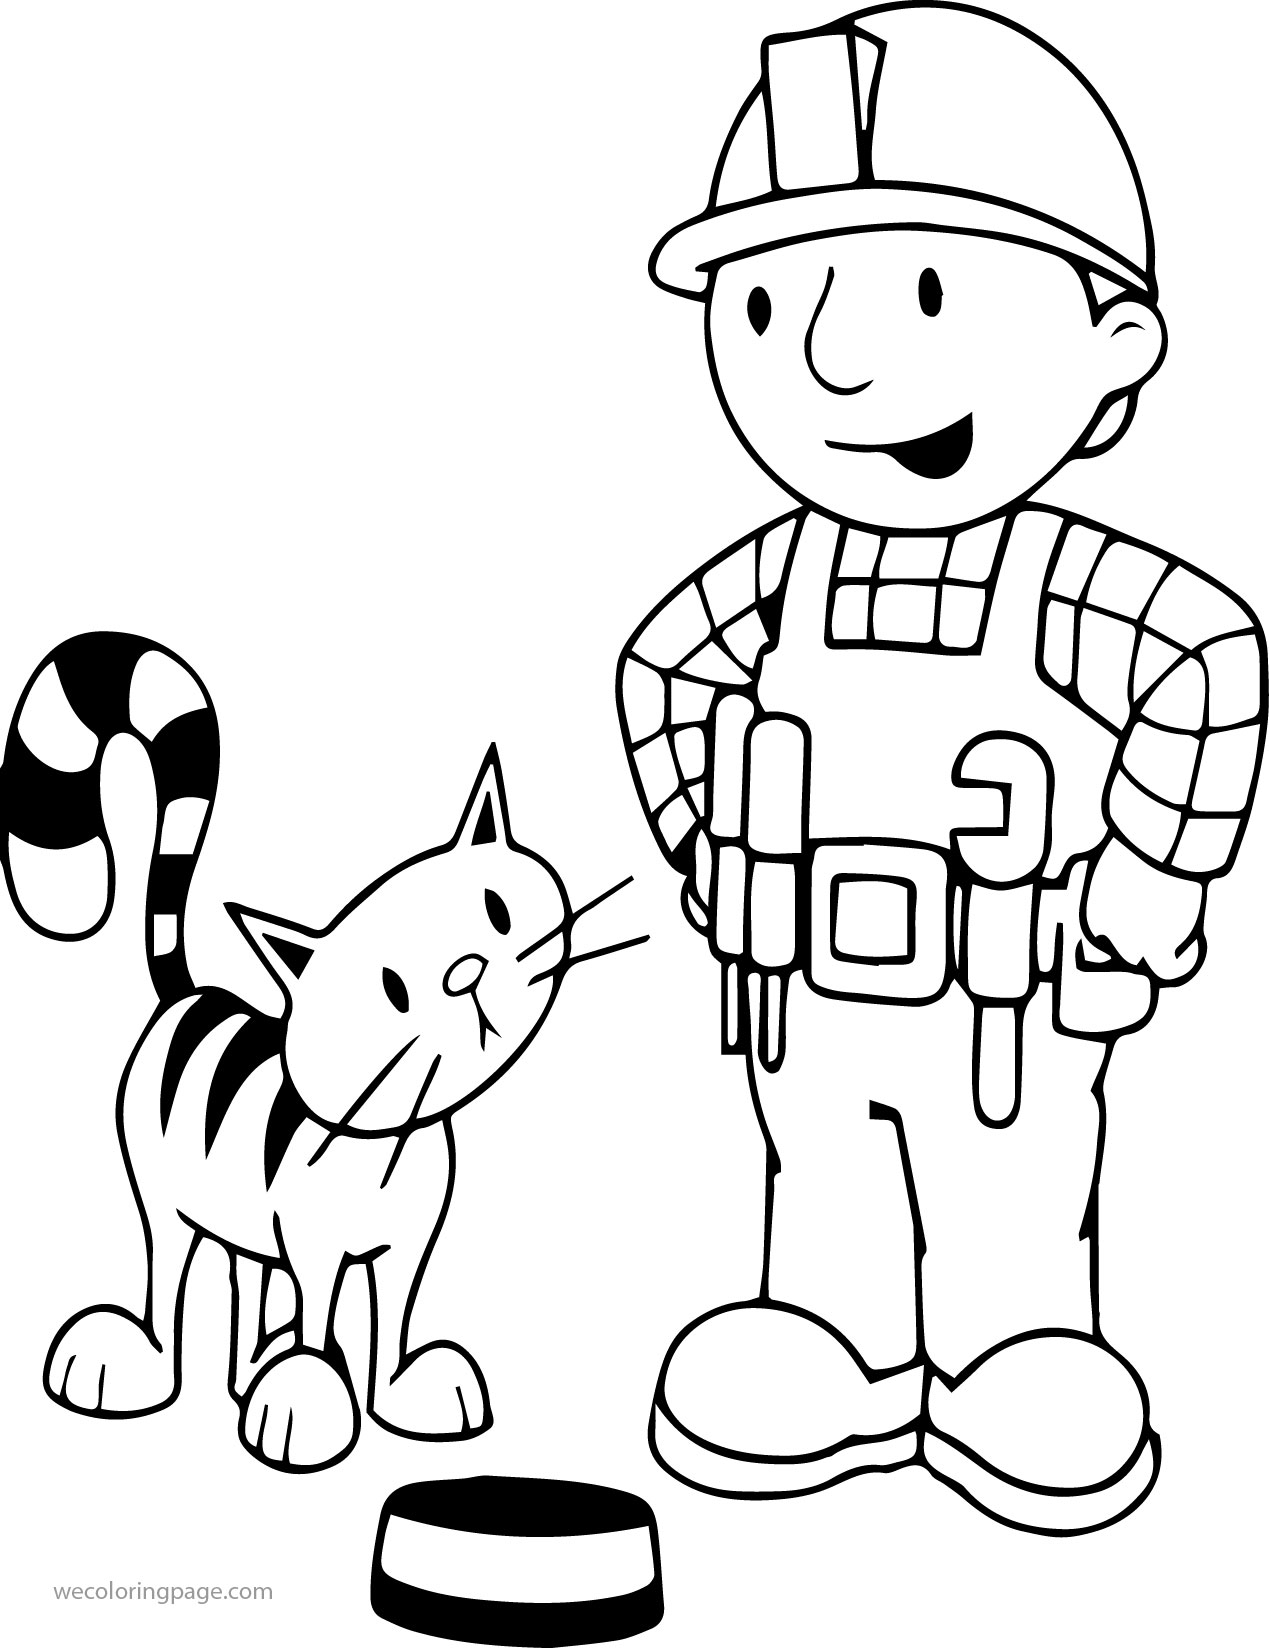 Bob The Builder With Cat Coloring Page